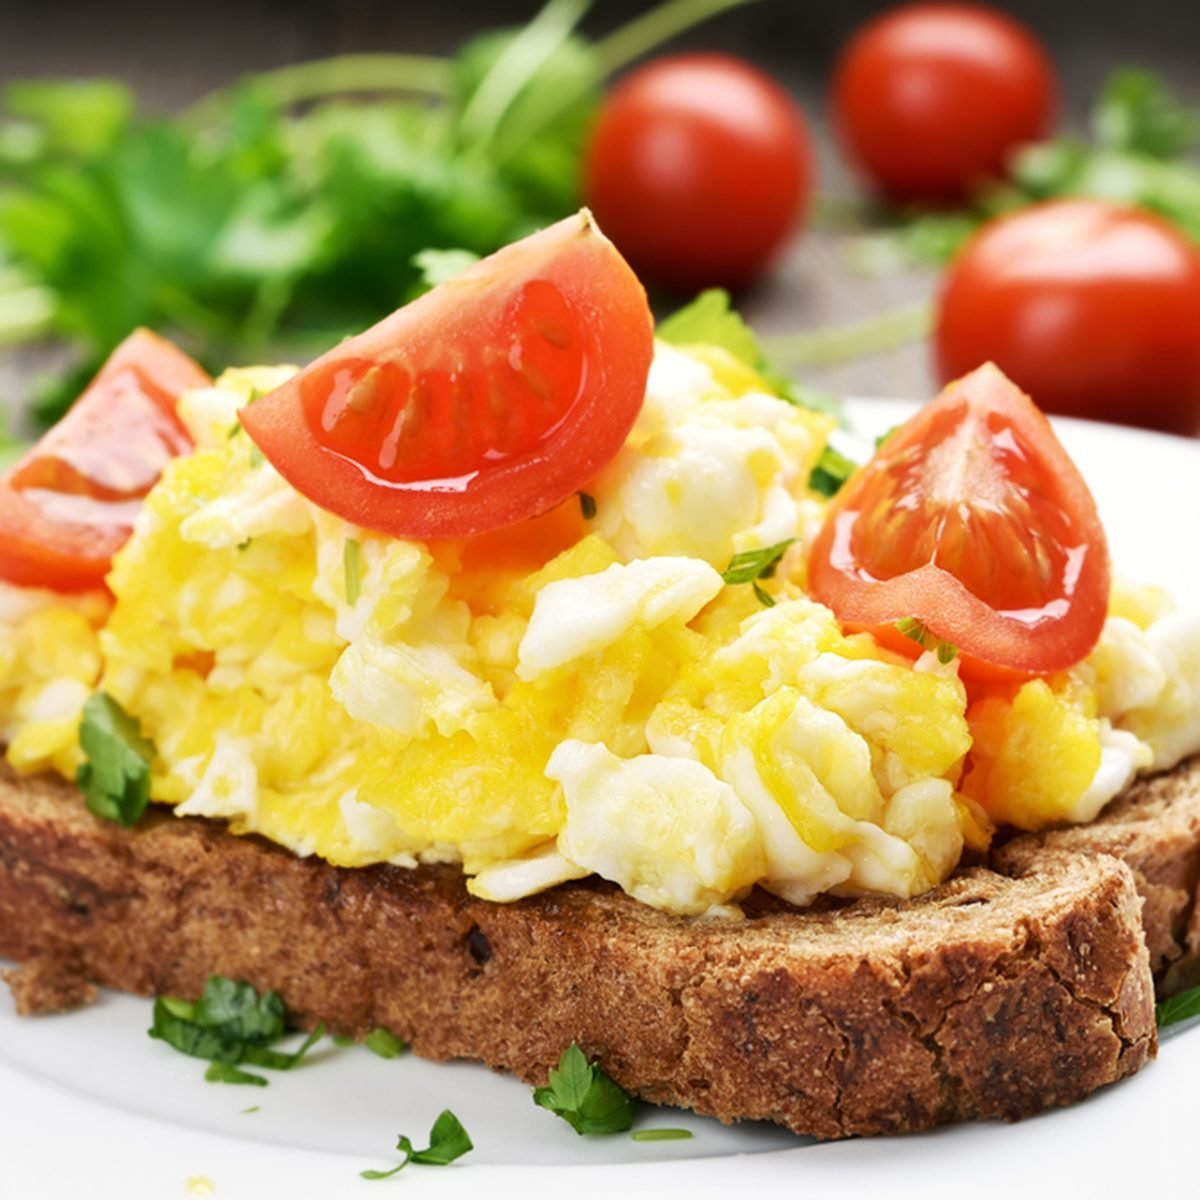 Breakfast scrambled eggs and tomato slices on bread